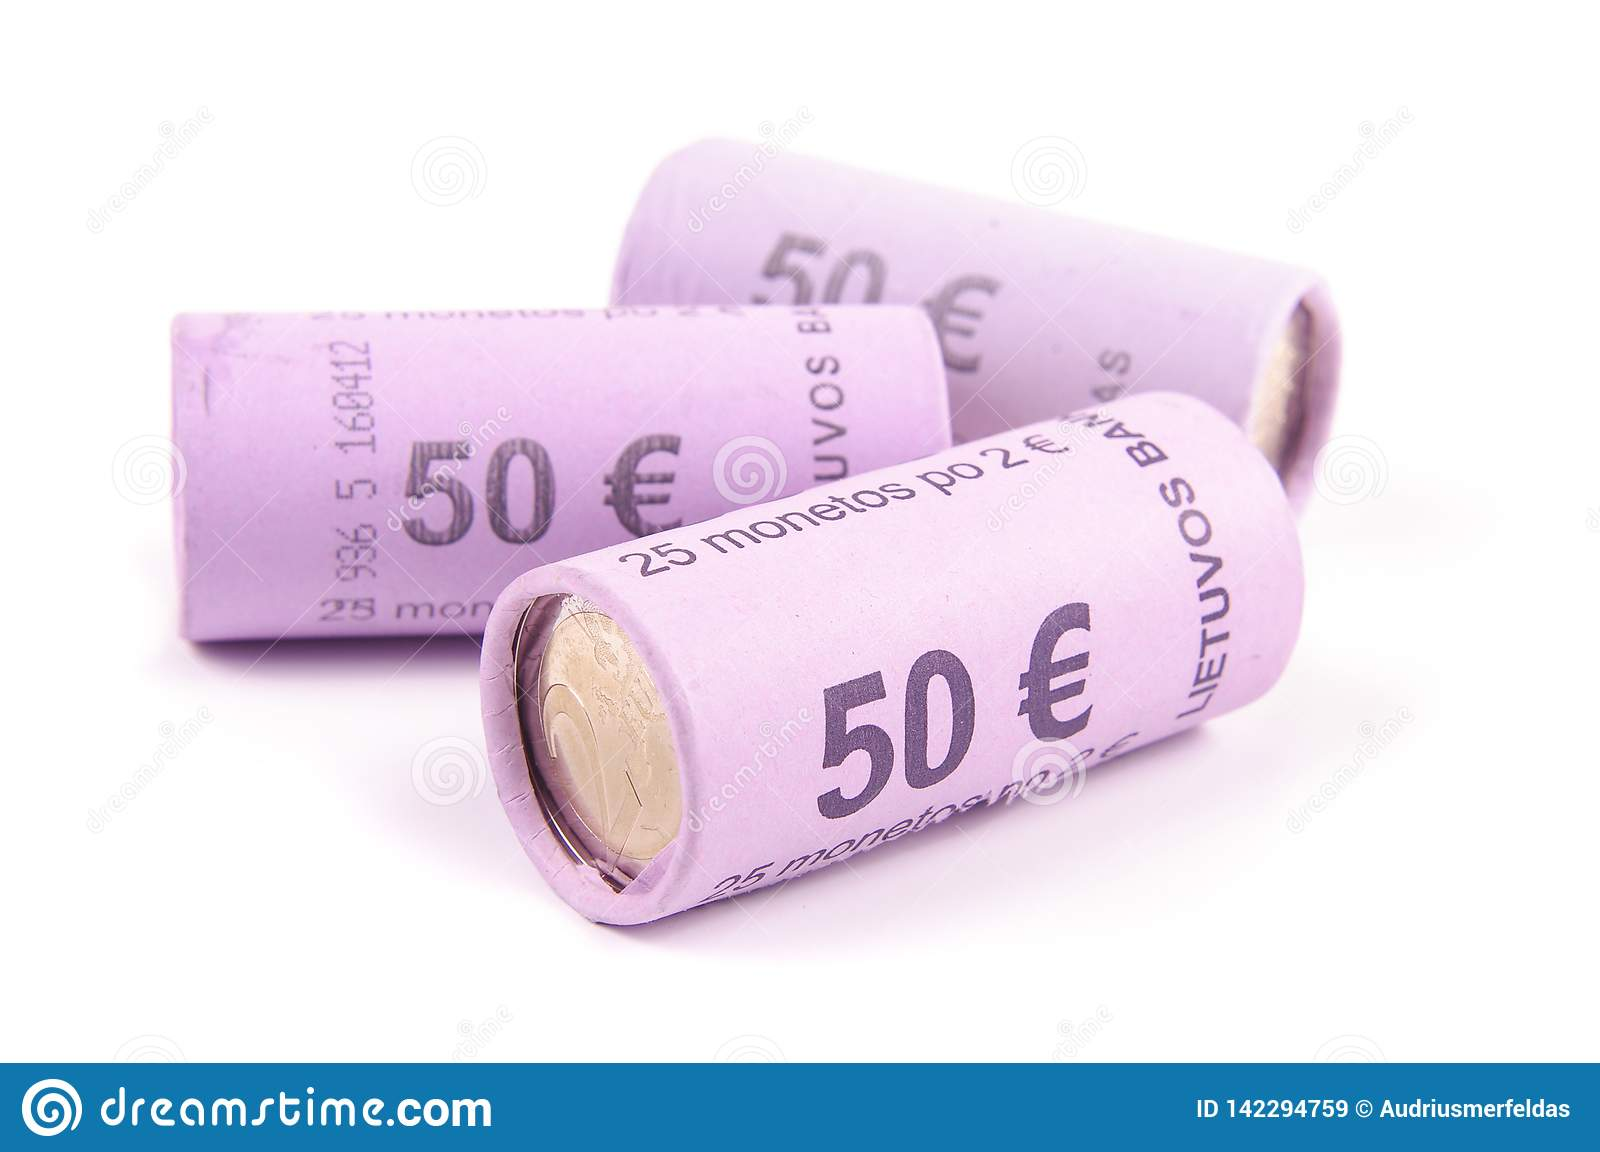 euro coin wrappers